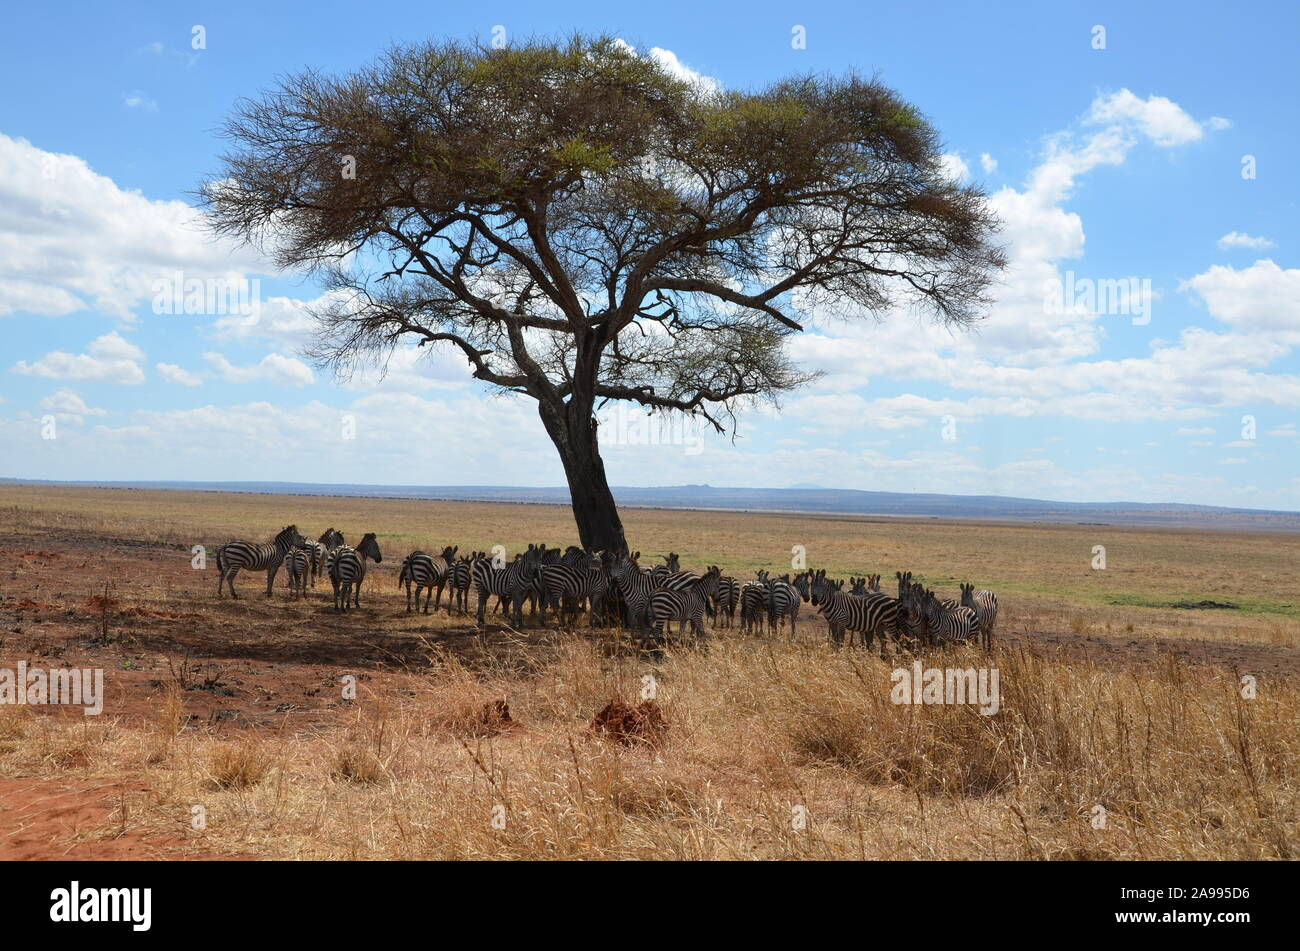 Herd of African zebras standing in the shade of a large tree in Tanzania. Stock Photo